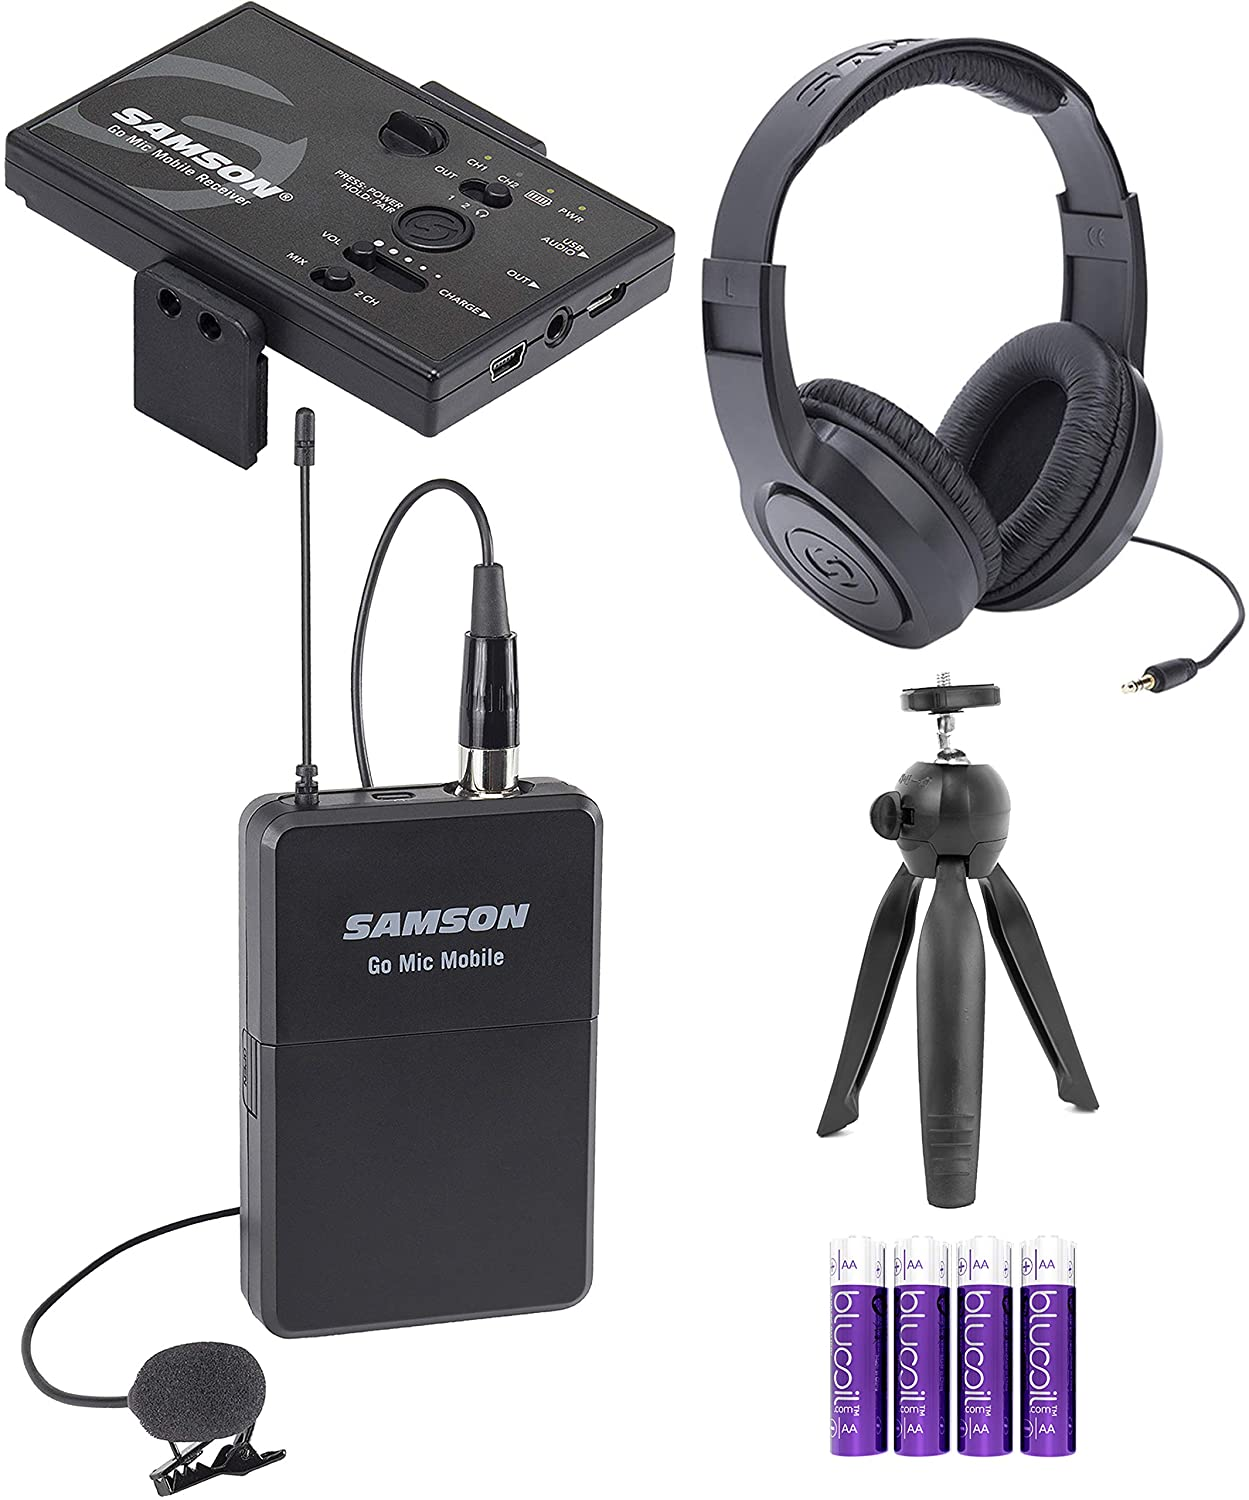 Samson Go Mic Mobile Professional Lavalier Wireless System Bundle with Table Top Camera Tripod, SR350 Over Ear Stereo Headphones, and Blucoil 4 AA Batteries